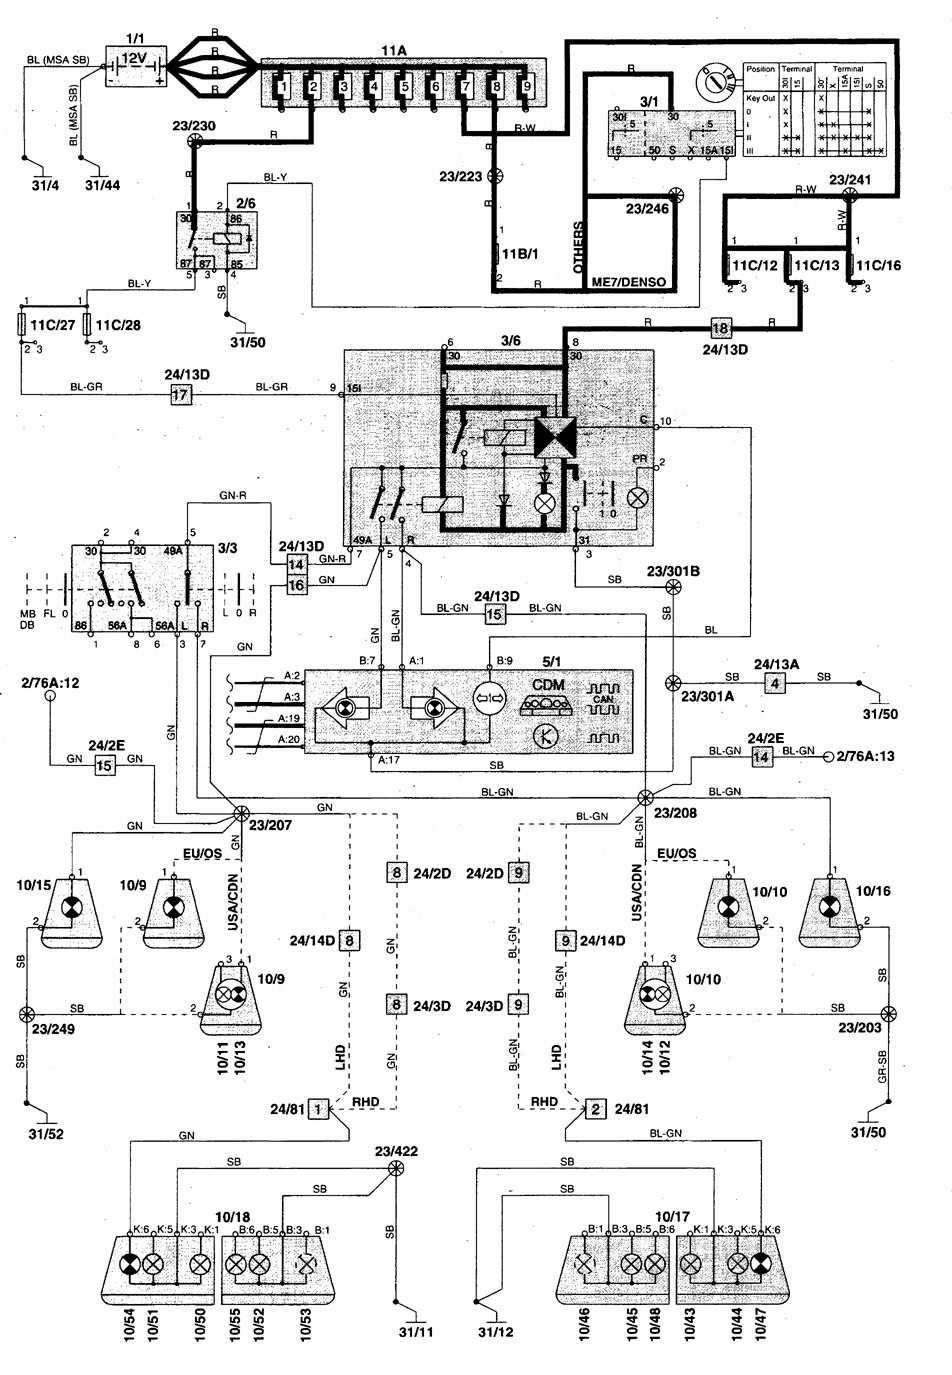 1990 Volvo 240 Alternator Wiring Custom Diagram Turn Signal U2022 Rh Msblog Co Bosch Gm